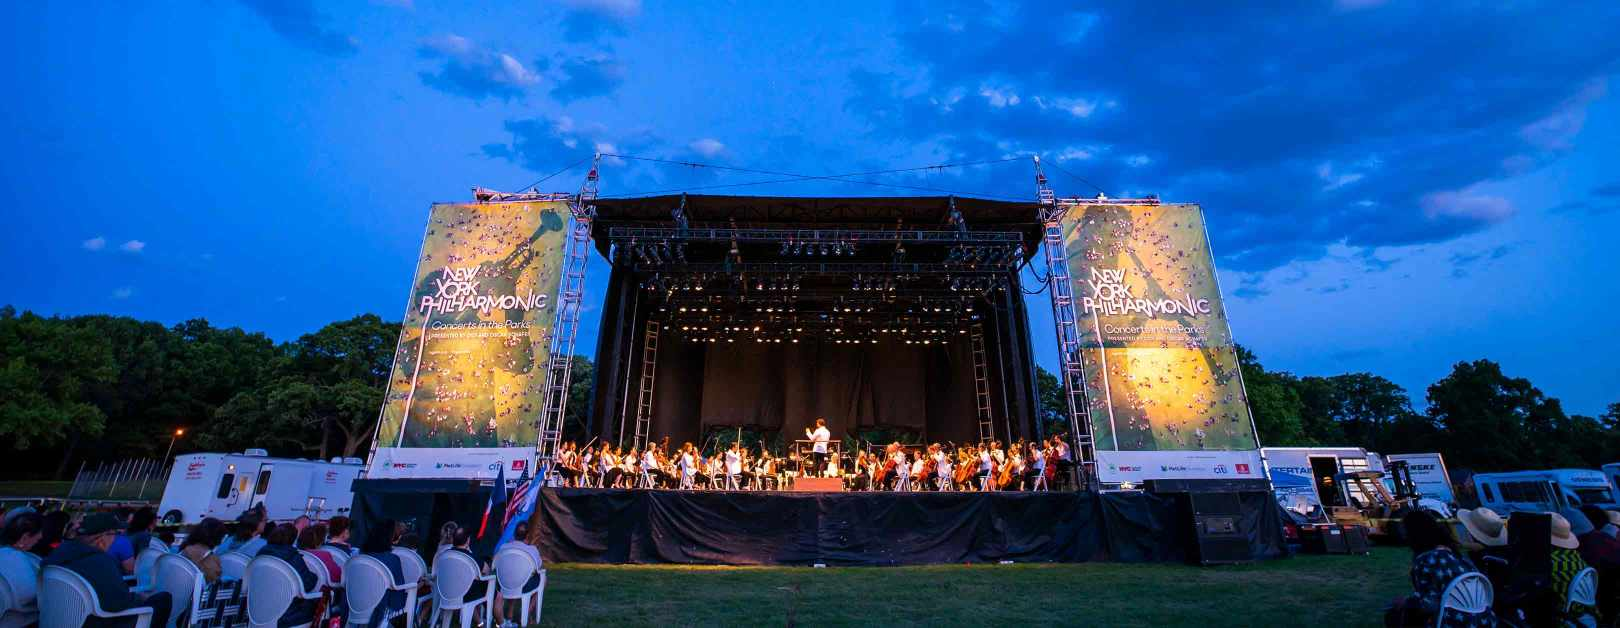 New York Philharmonic - Concerts in the Parks